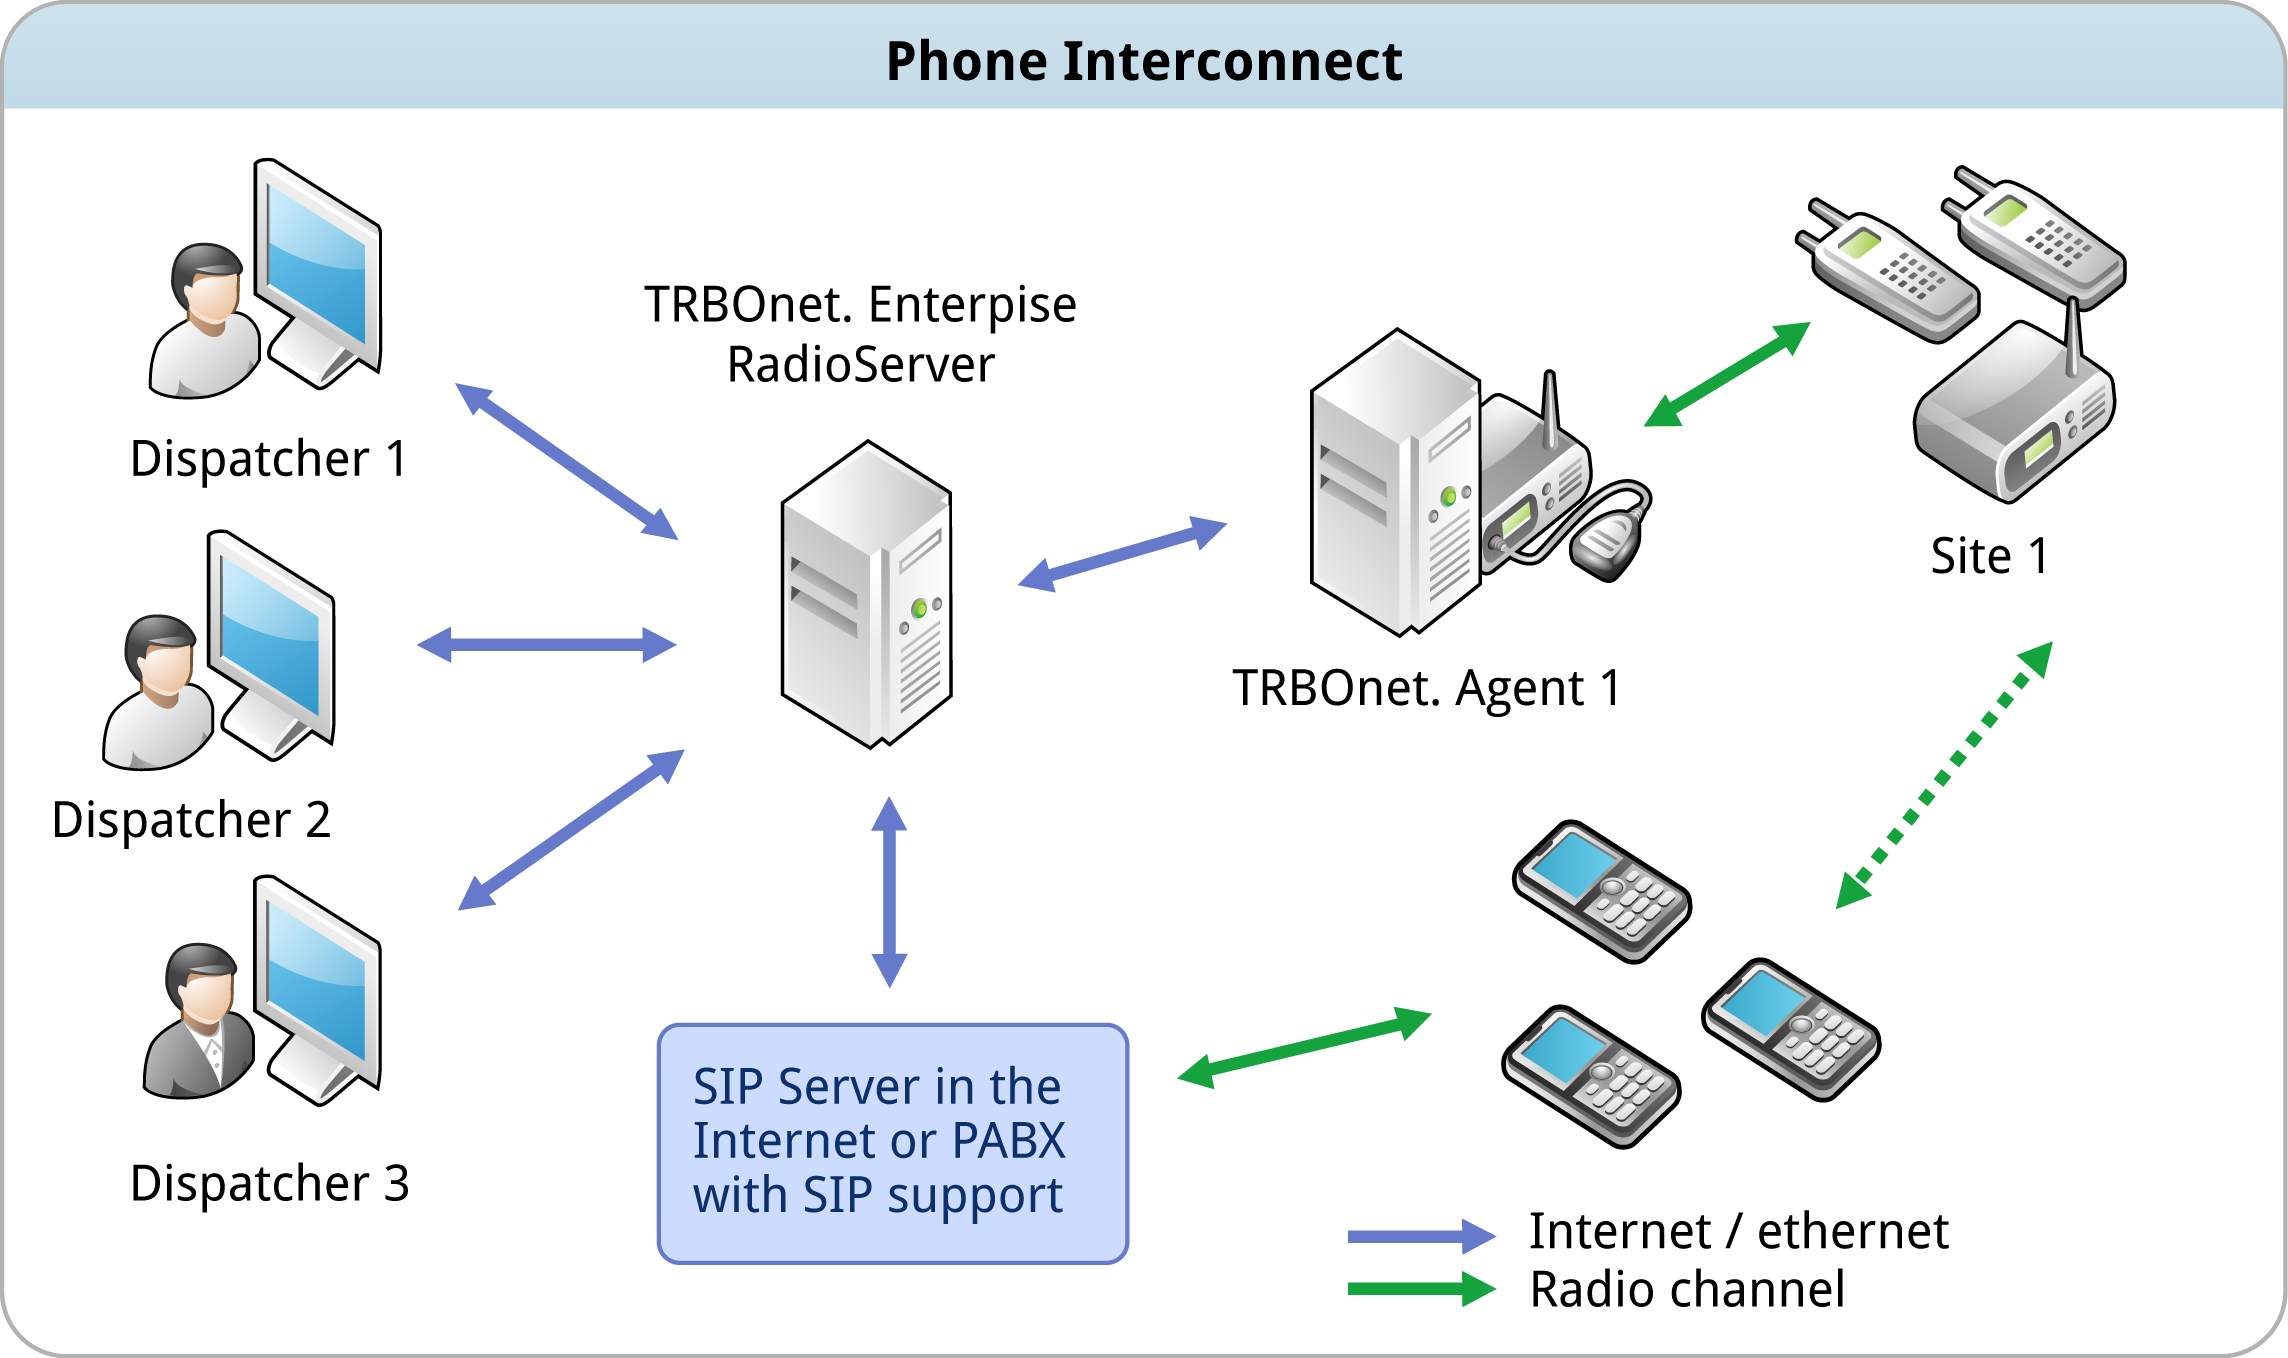 Telephone Interconnect for MOTOTRBO - TRBOnet  Dispatcher Console